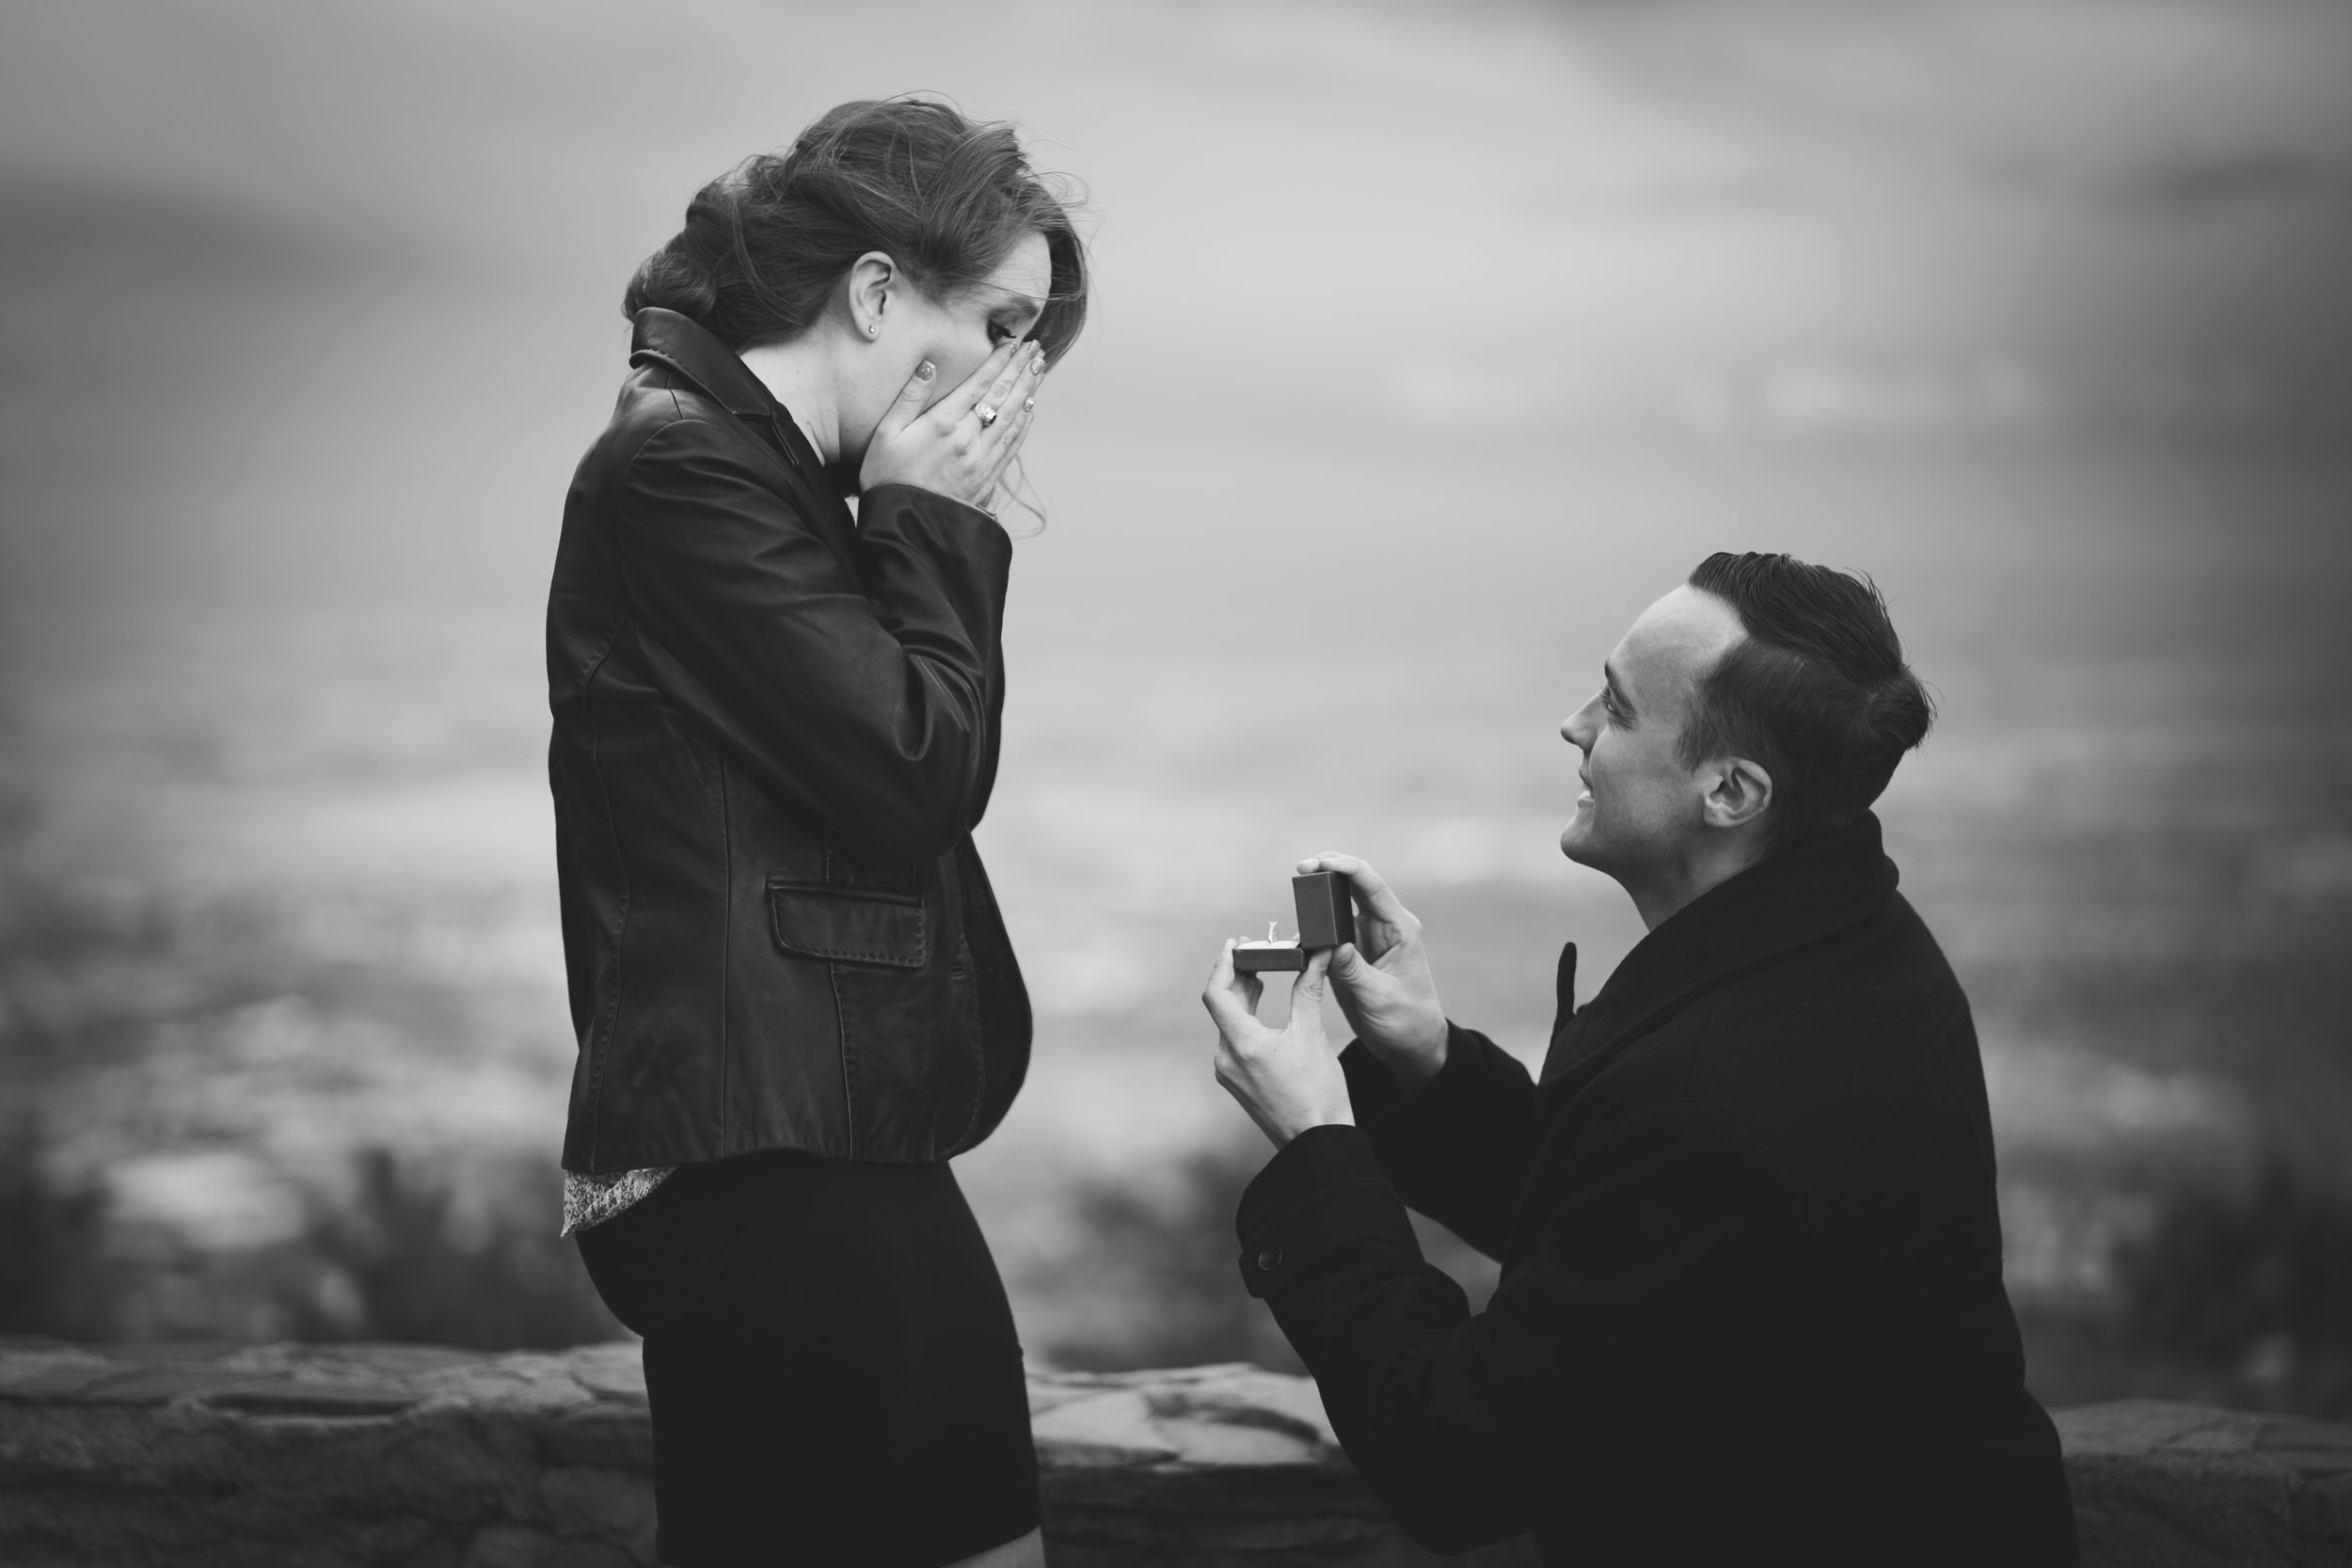 betsy-and-tim-proposal-03-bw.jpg